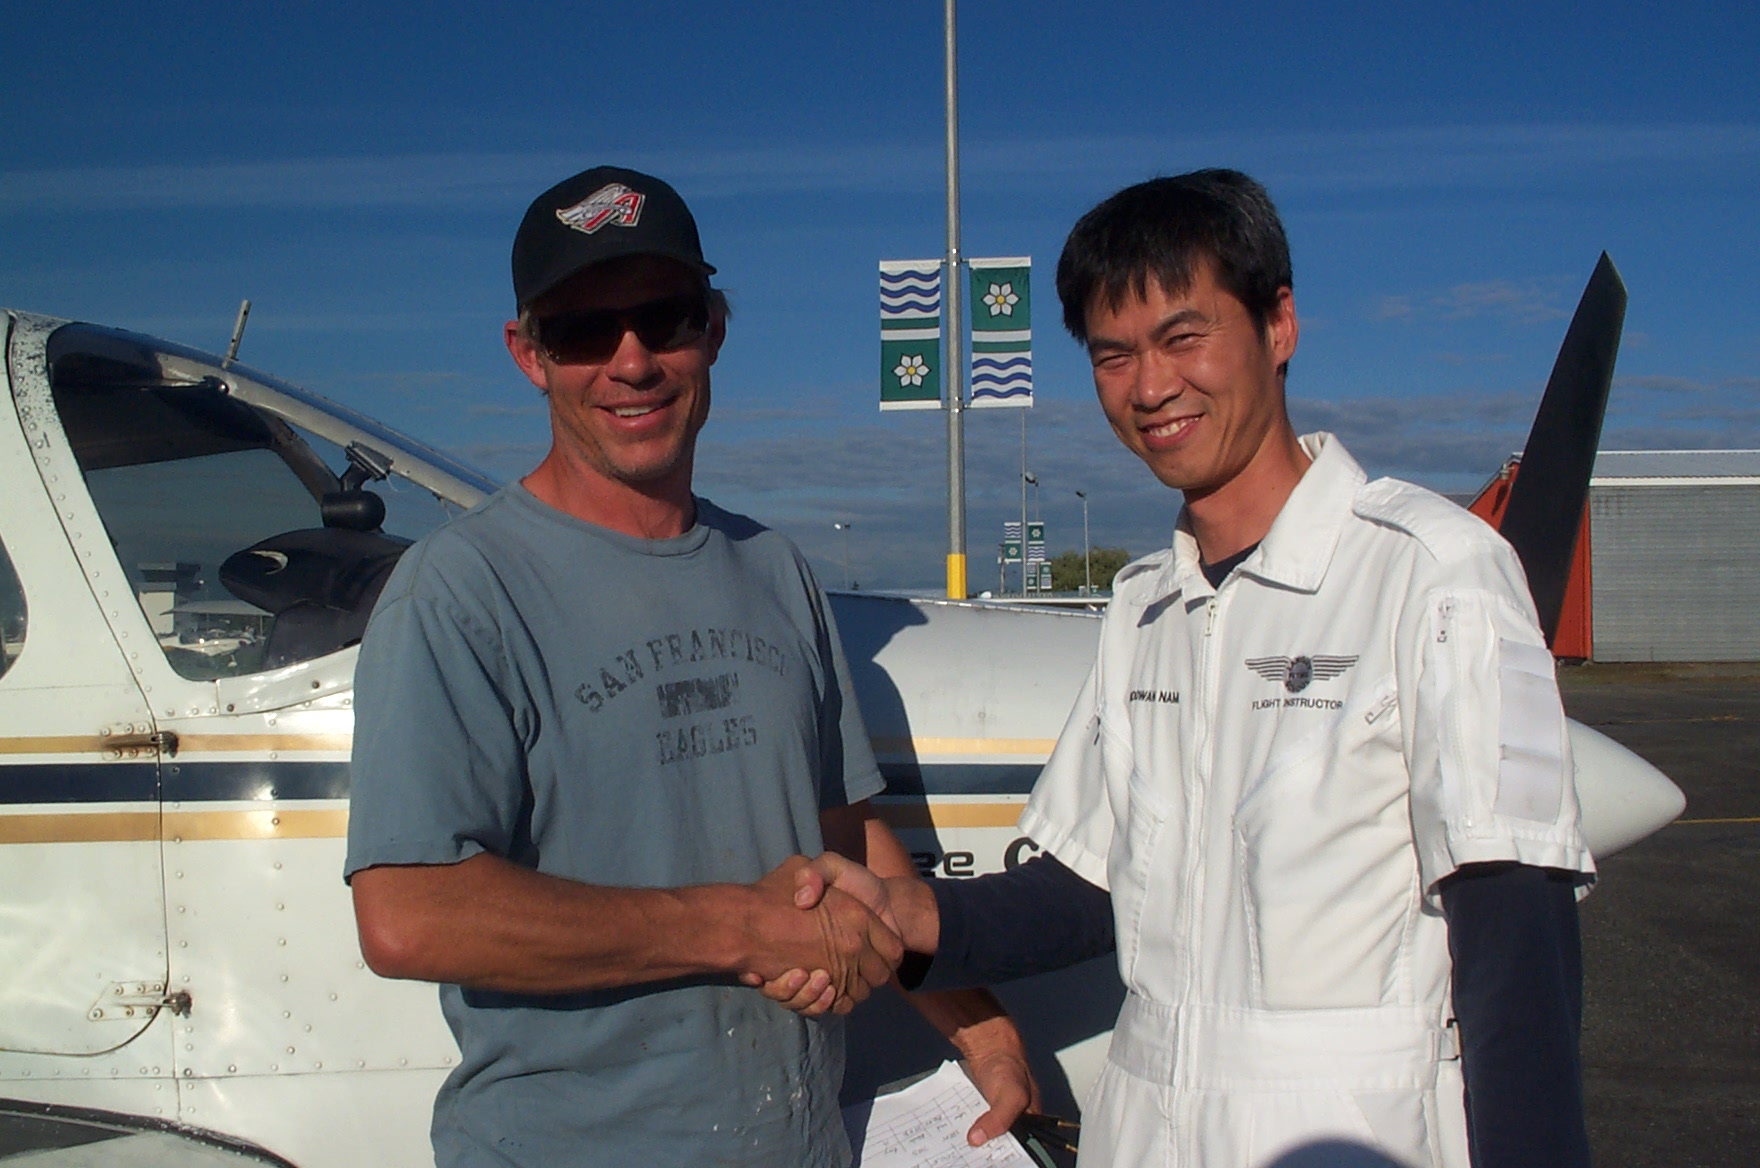 Darryl (Mark) Reid is congratulated by Flight Instructor Hoowan Nam after the completion of Mark's Second/First Solo Flight in Cherokee GCEP on September 22, 2010. Langley Flying School.